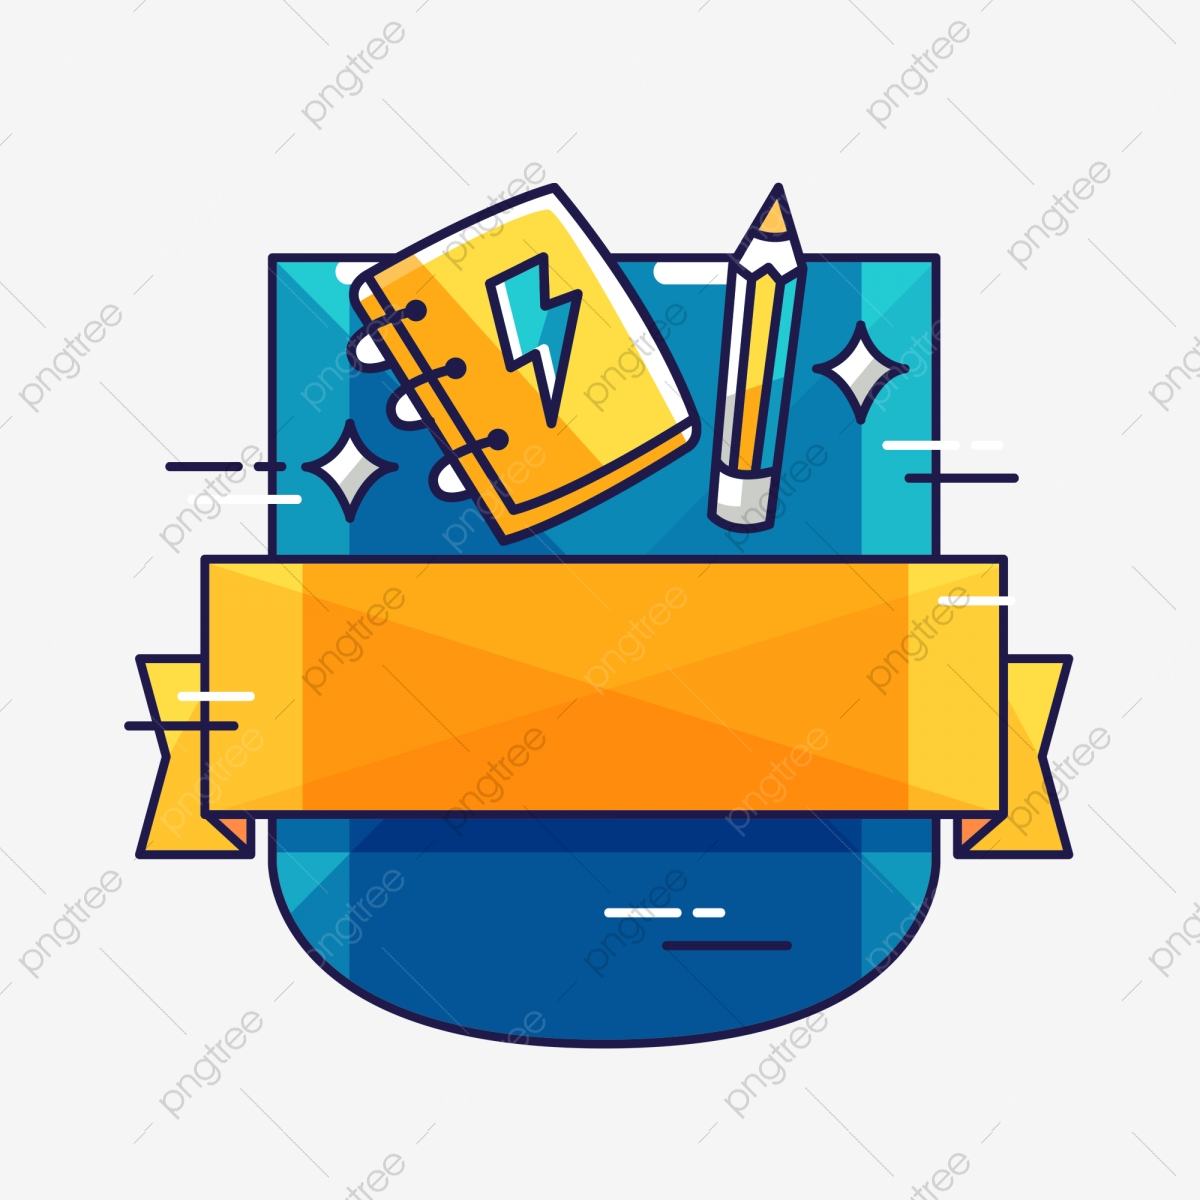 Ppt Title Ppt Decoration Ppt Icon Business Ppt Decoration, Business